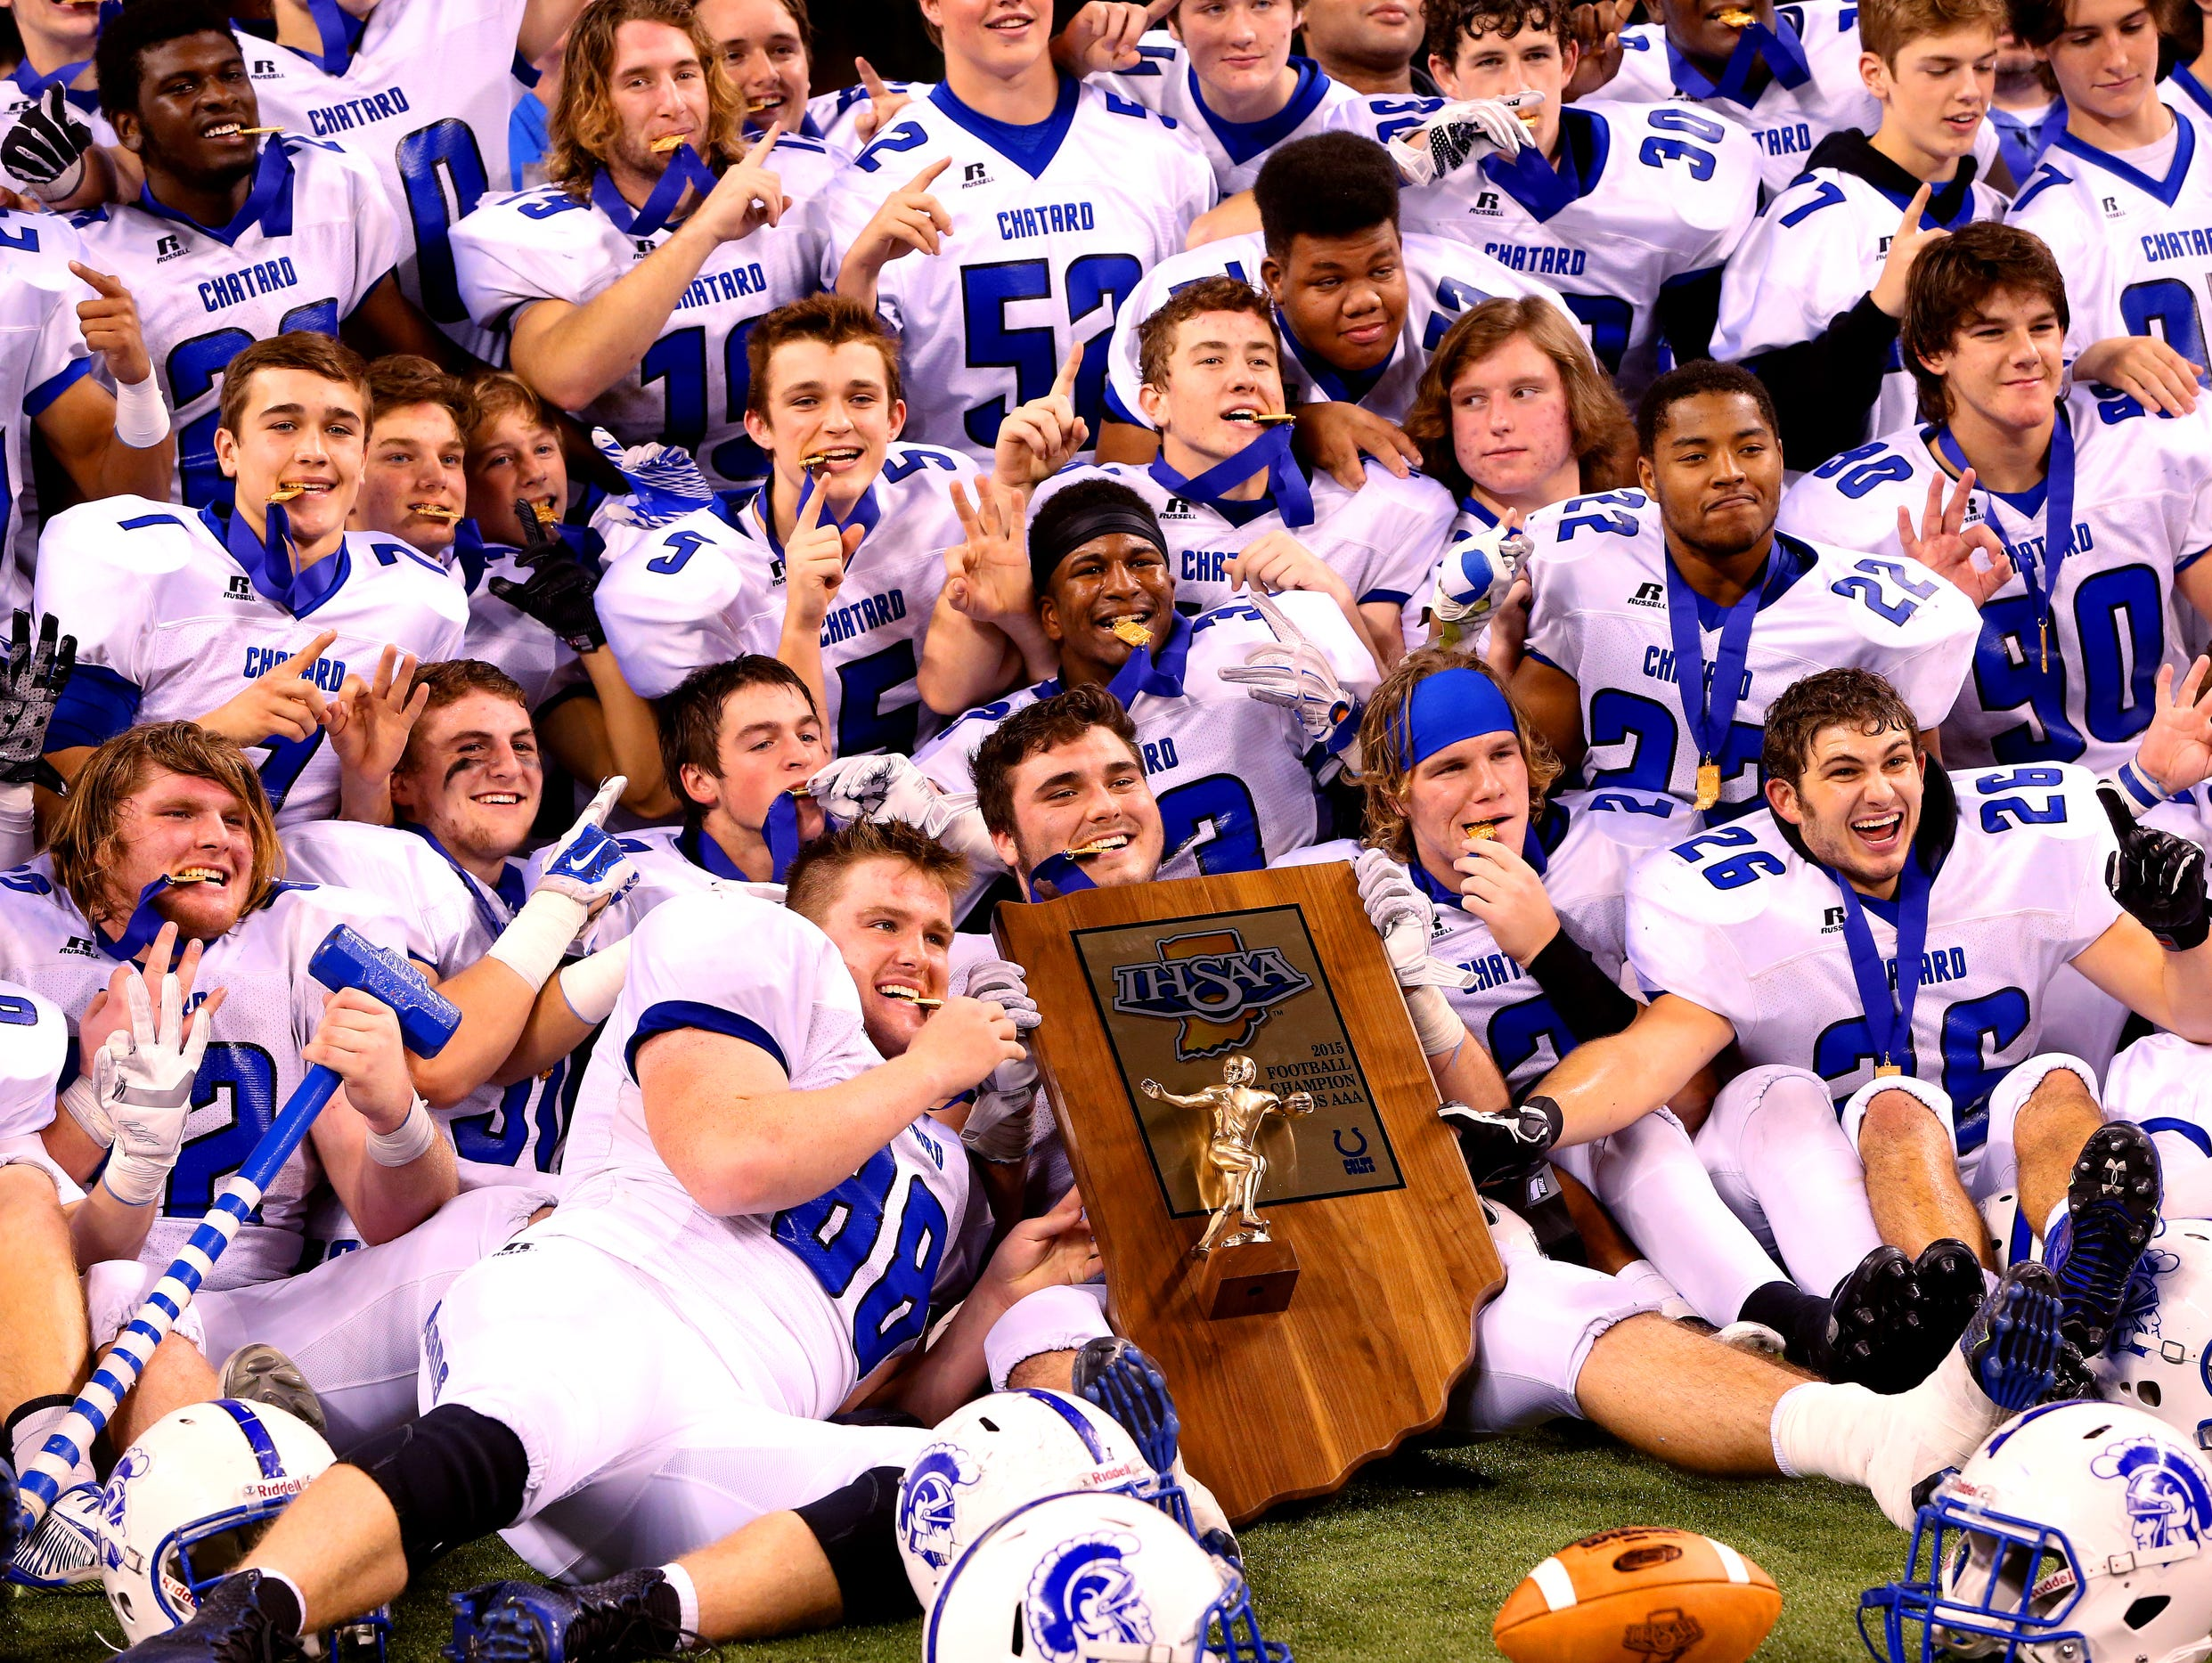 The Bishop Chatard Trojans celebrate after defeating the West Lafayette Red Devils in the Class 3A IHSAA Football State Tournament finals, Nov. 27, 2015.